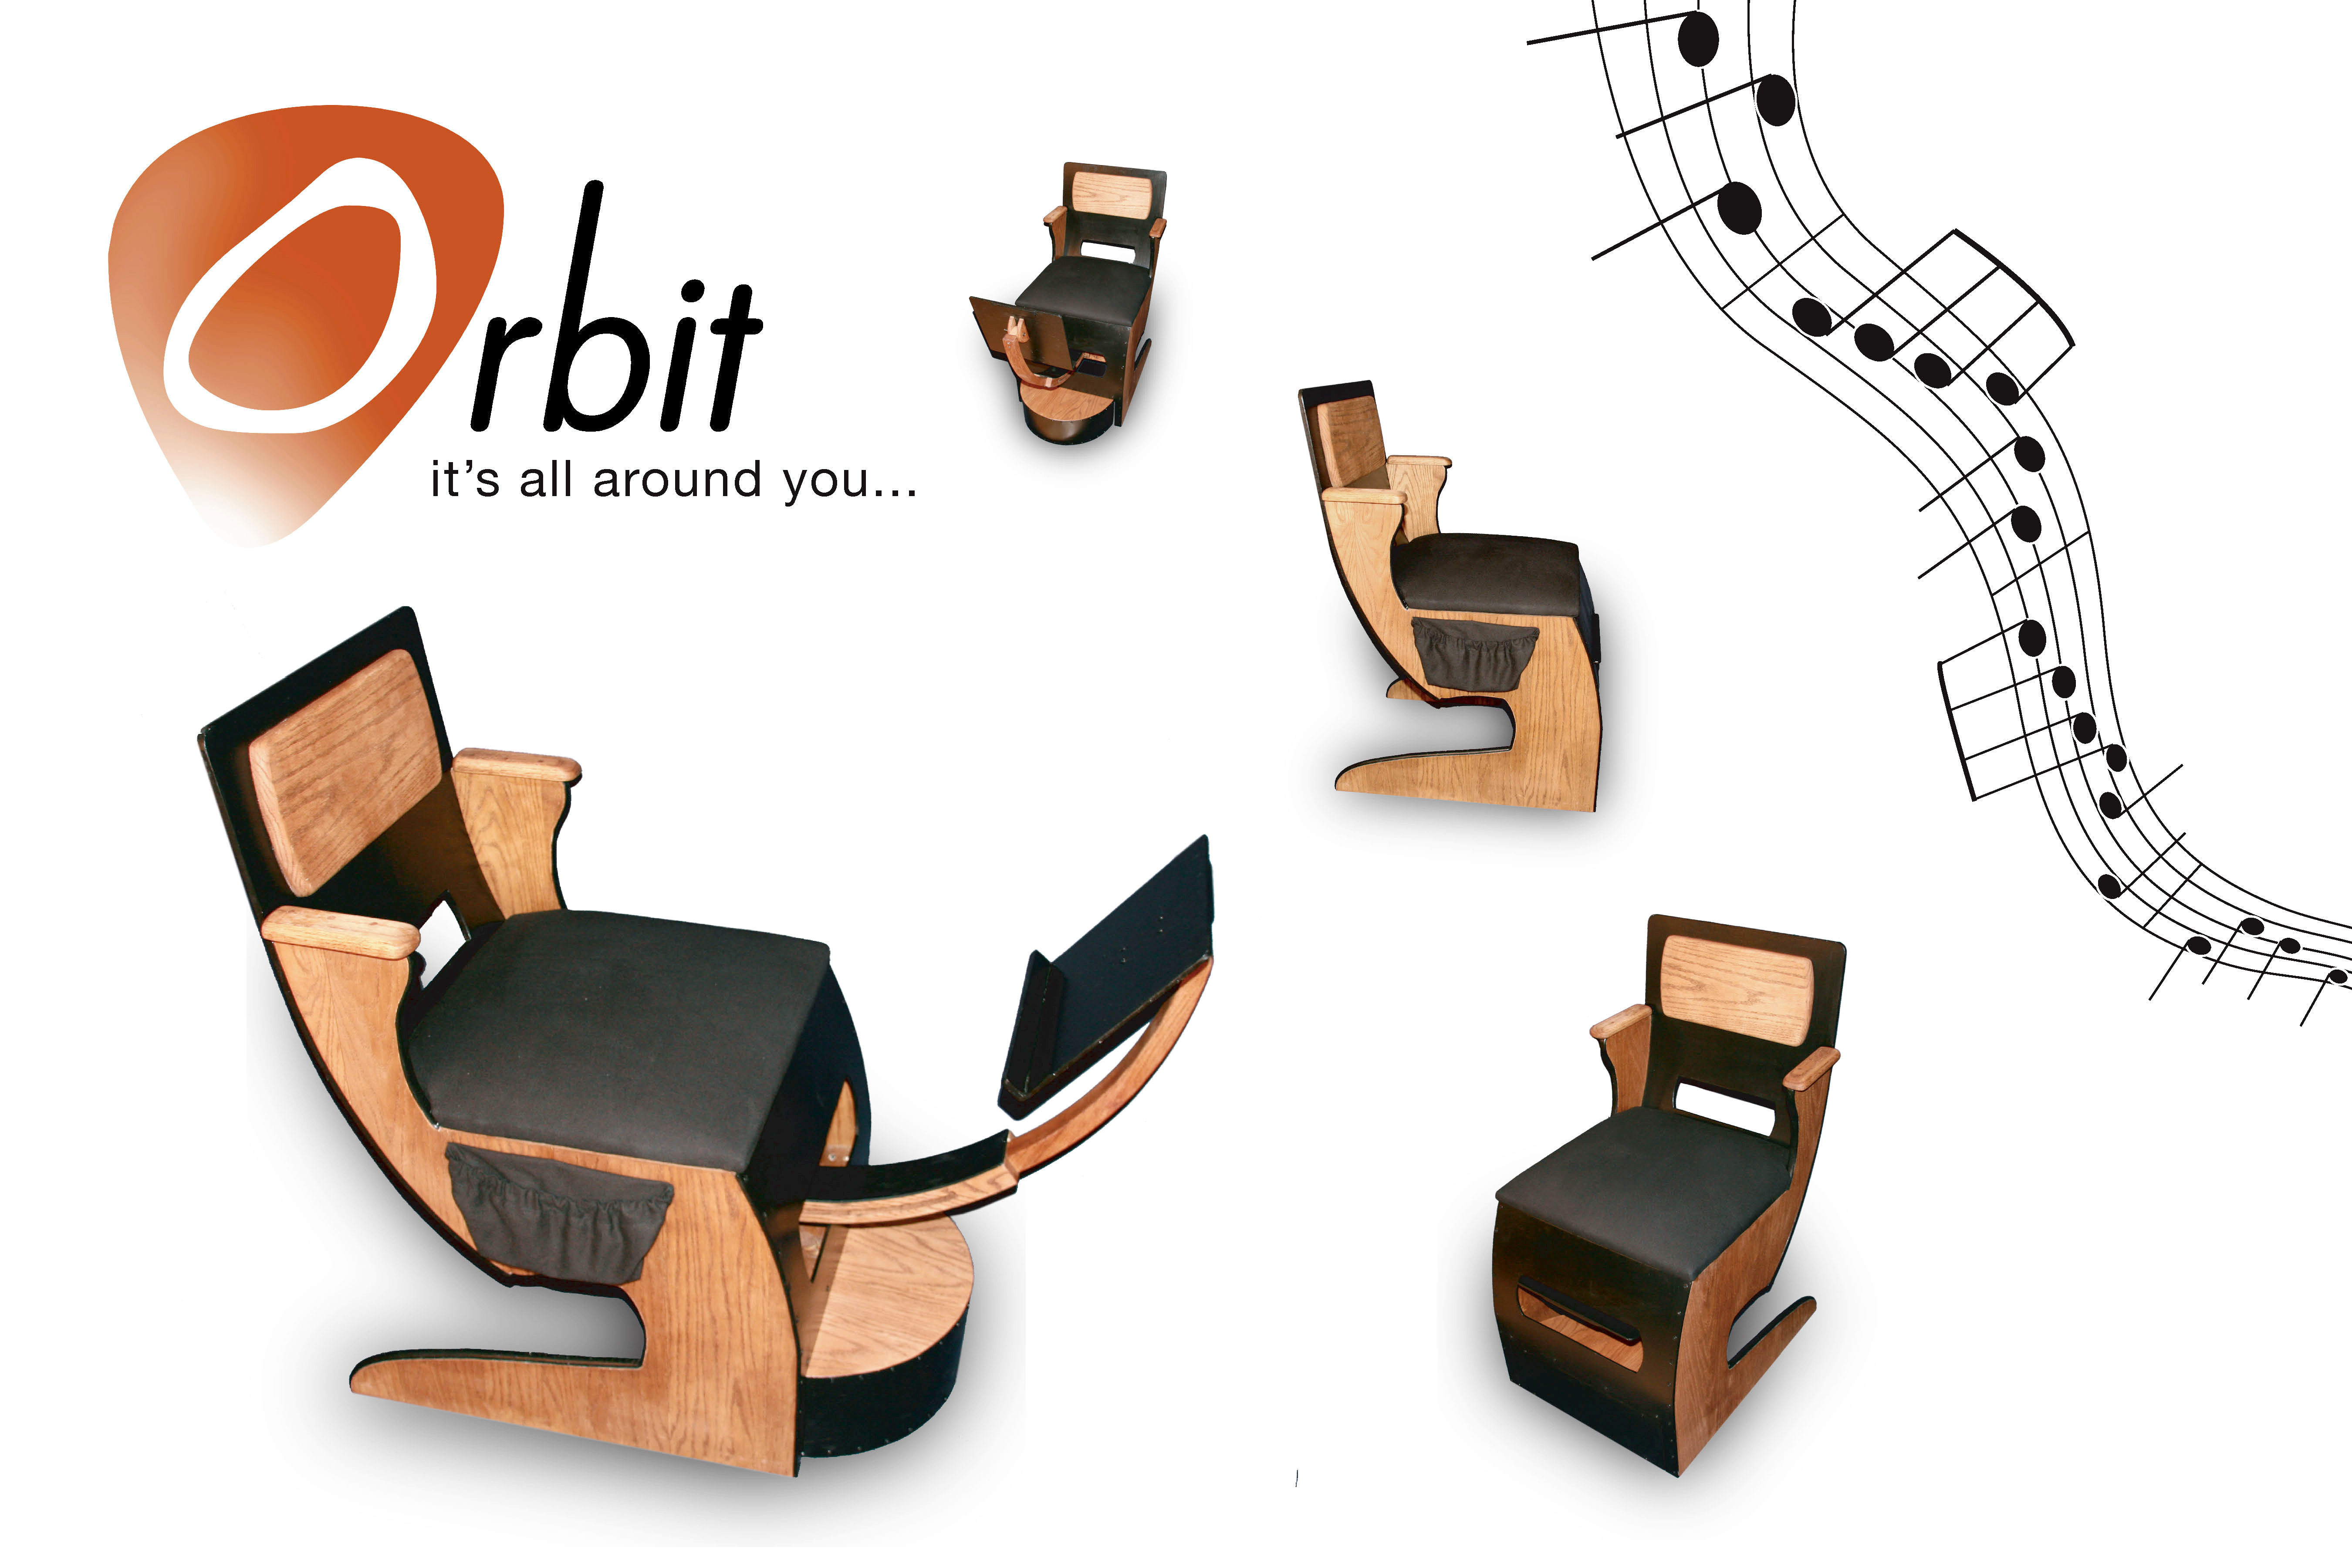 Guitar Chair by Robert Deutsch at Coroflot